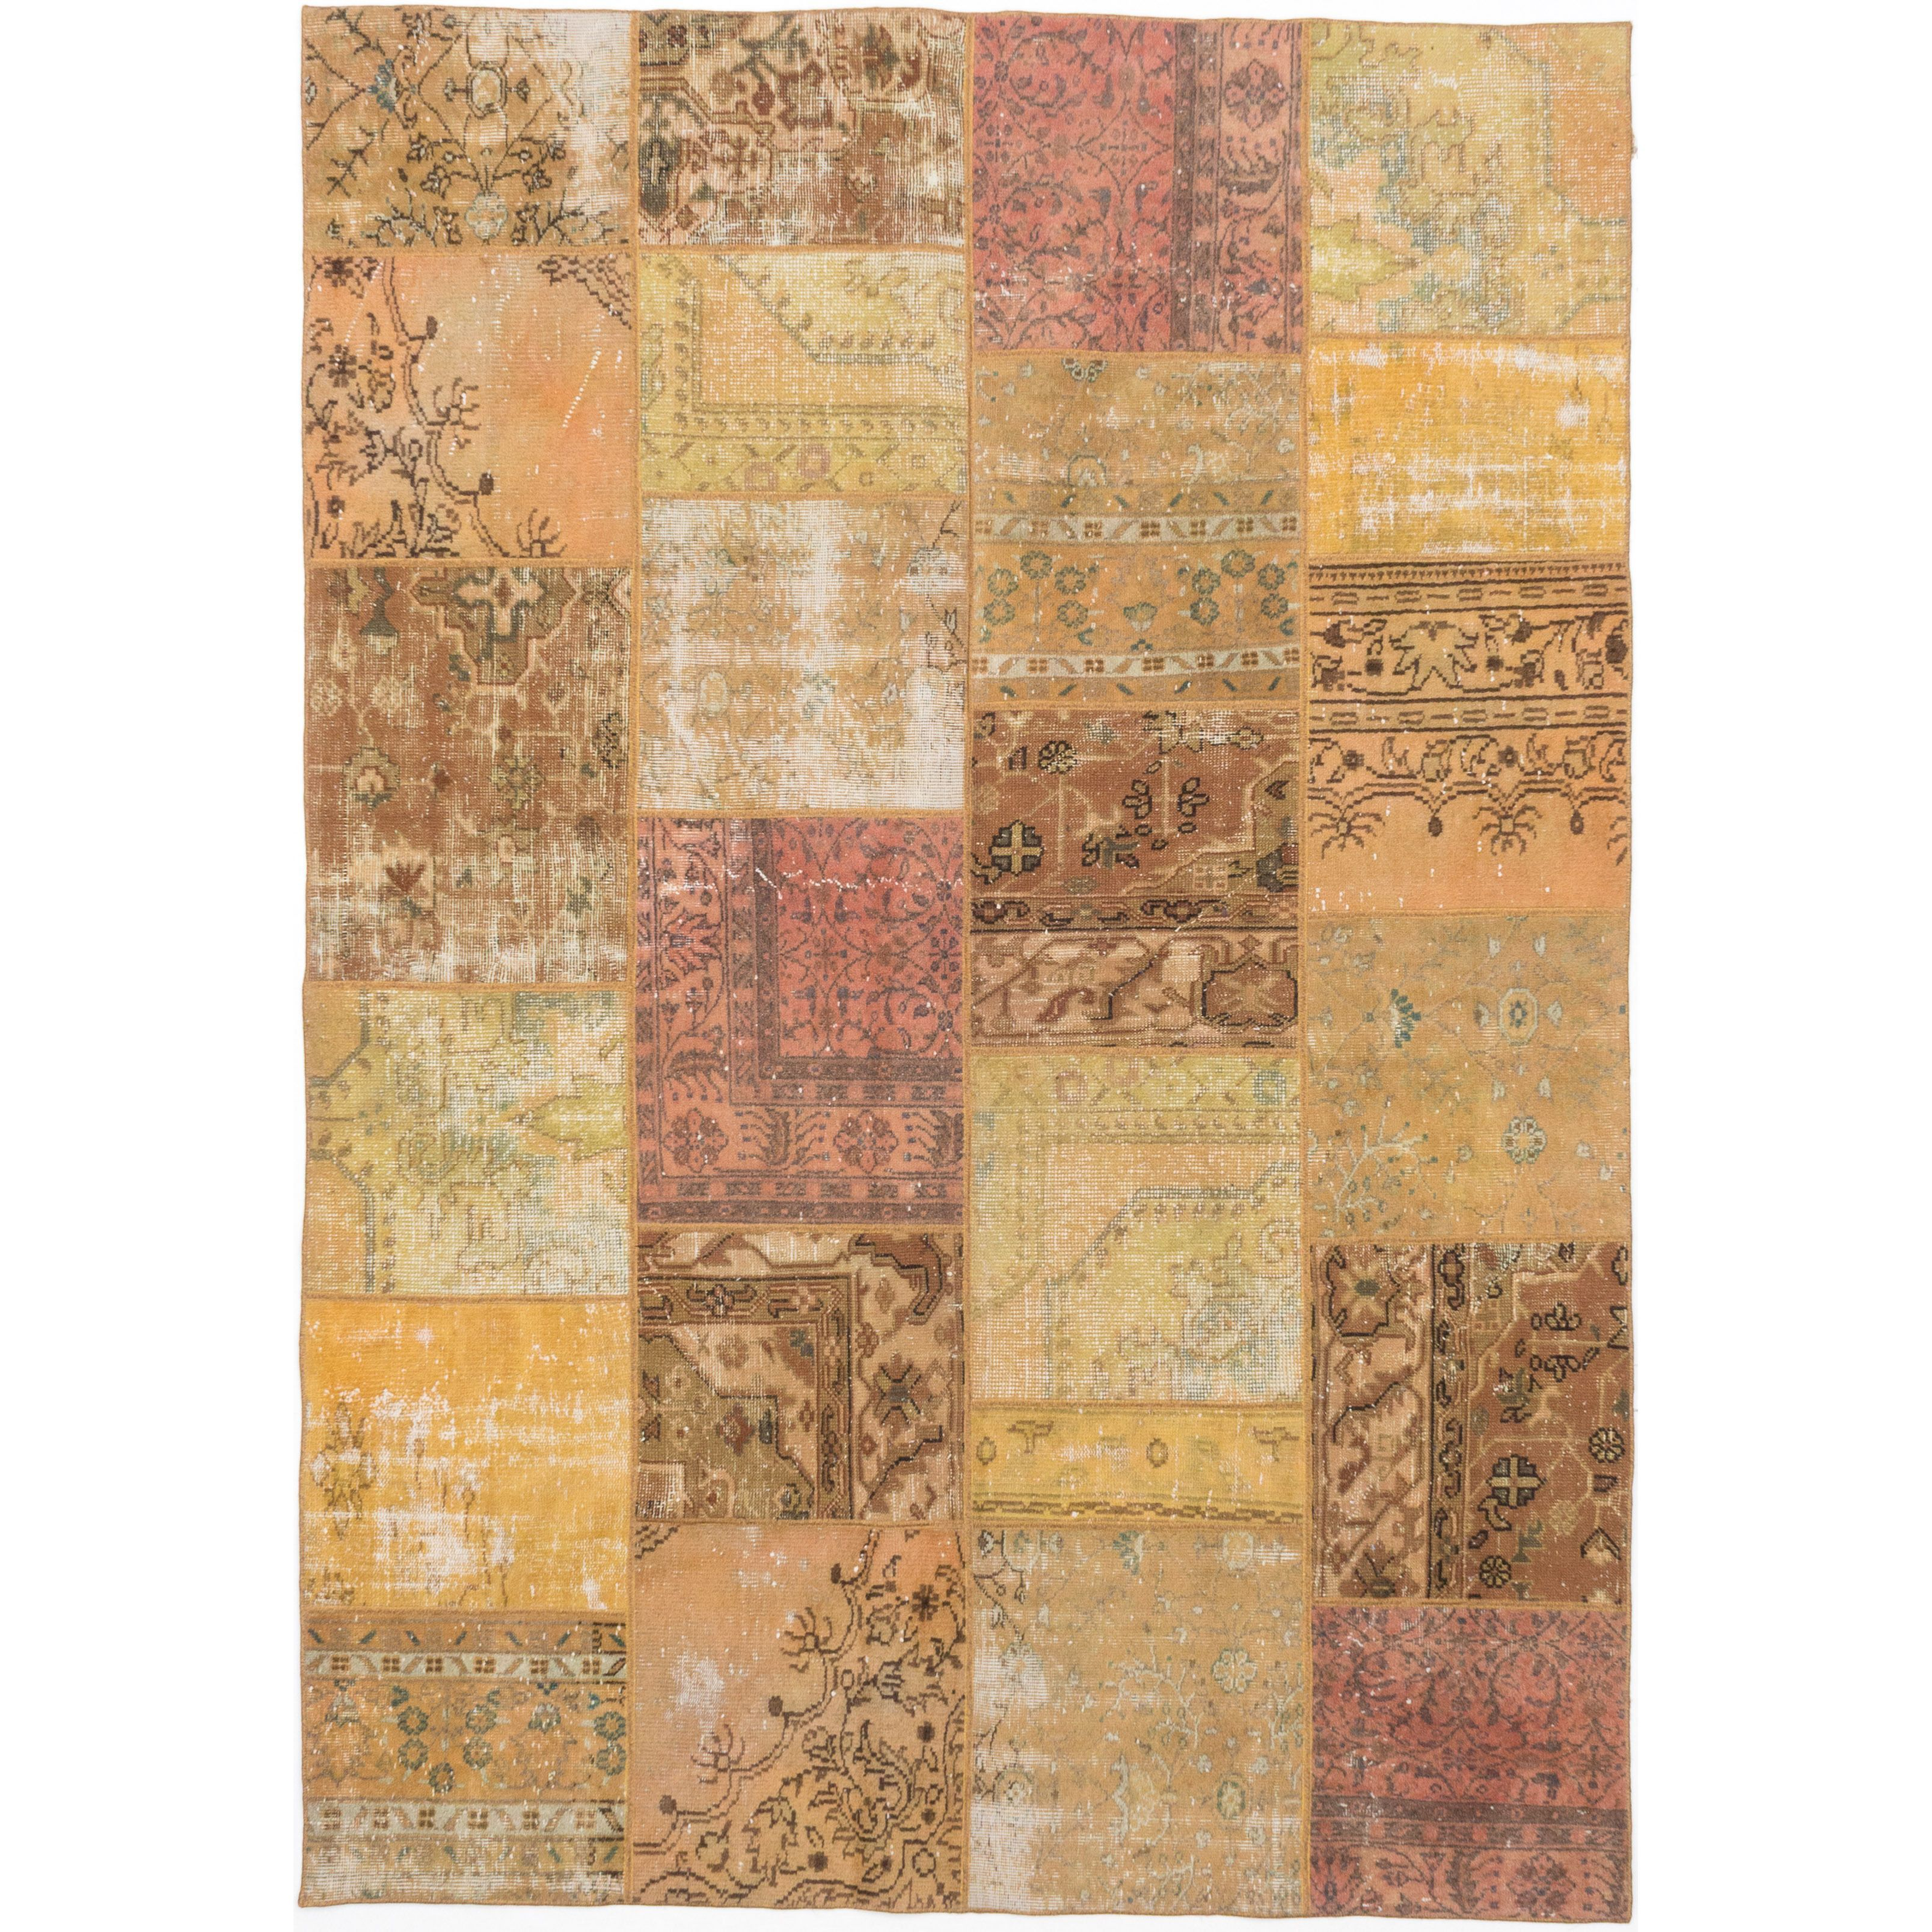 ecarpetgallery Color Transition Patch Brown Wool Rug (6'10 x 9'8) (Brown Light Brown Rug (6' x 9')), Size 6' x 9' (Cotton, Abstract)